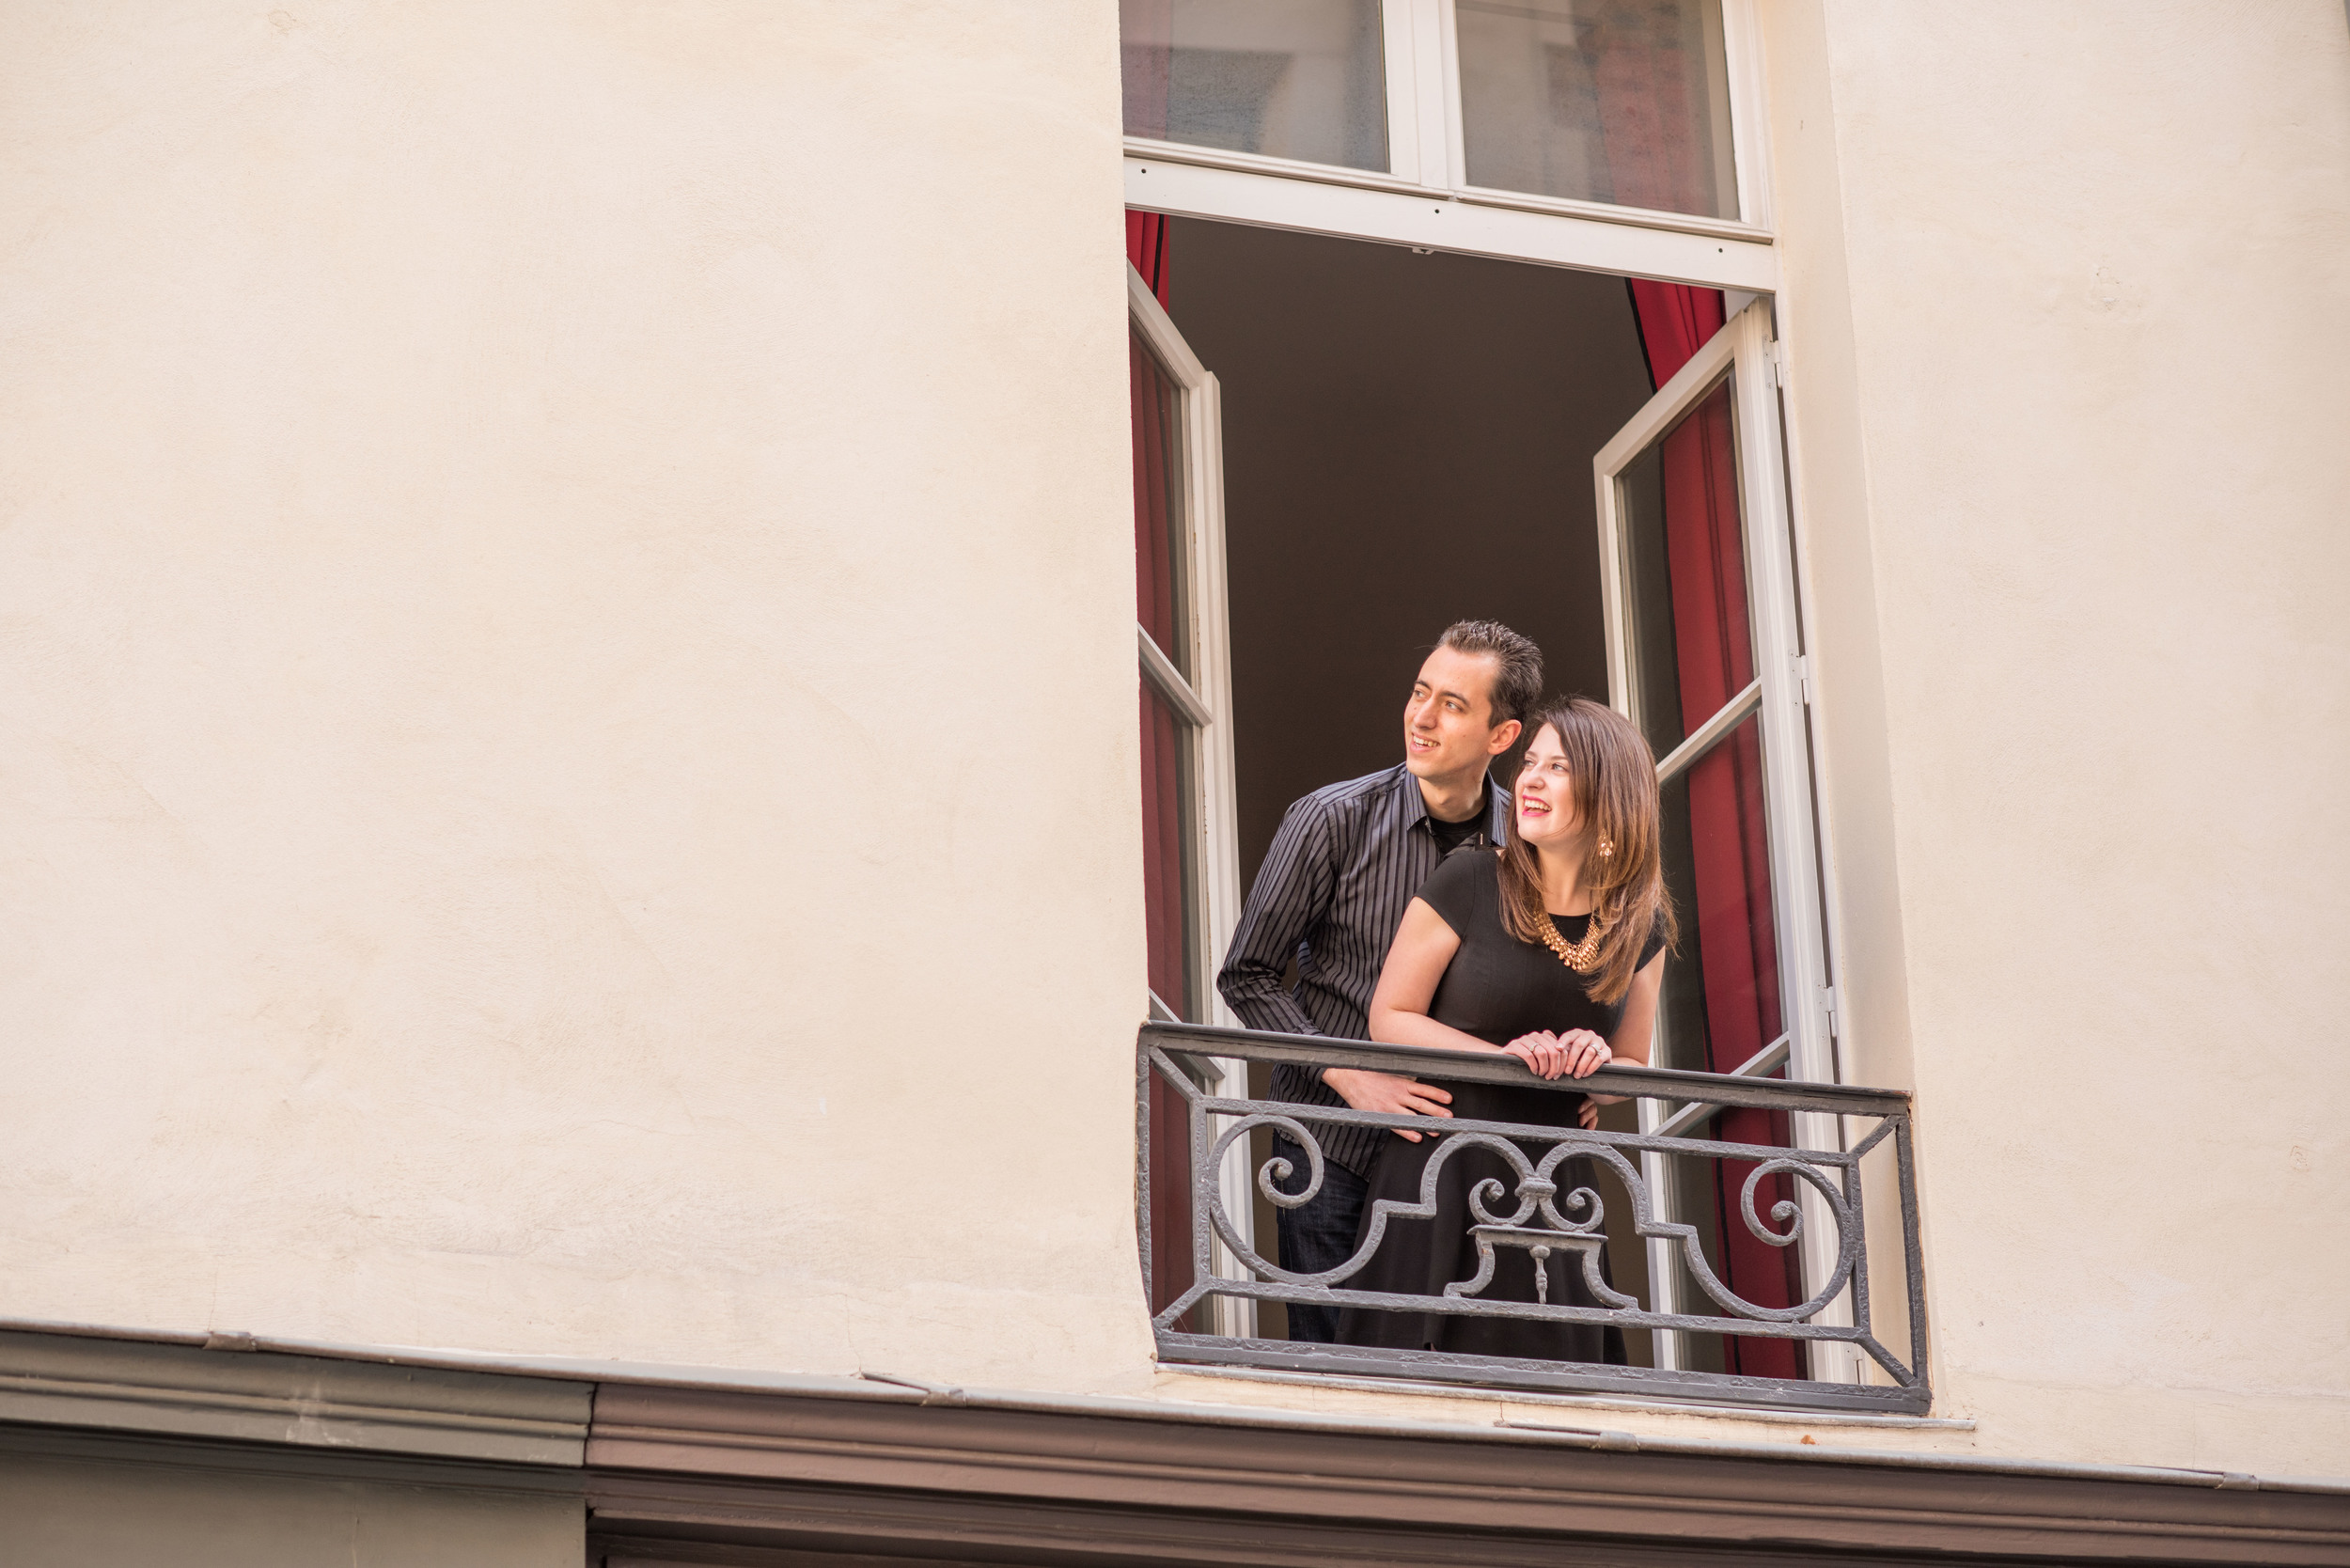 I like to think that this photo of us at our apartment window captures us looking forward with anticipation to the next chapter in the US. Cheesy? Sorry, it is - but it speaks to me of how I tried to live those last weeks in Paris: hopeful for the future, while savoring the present.